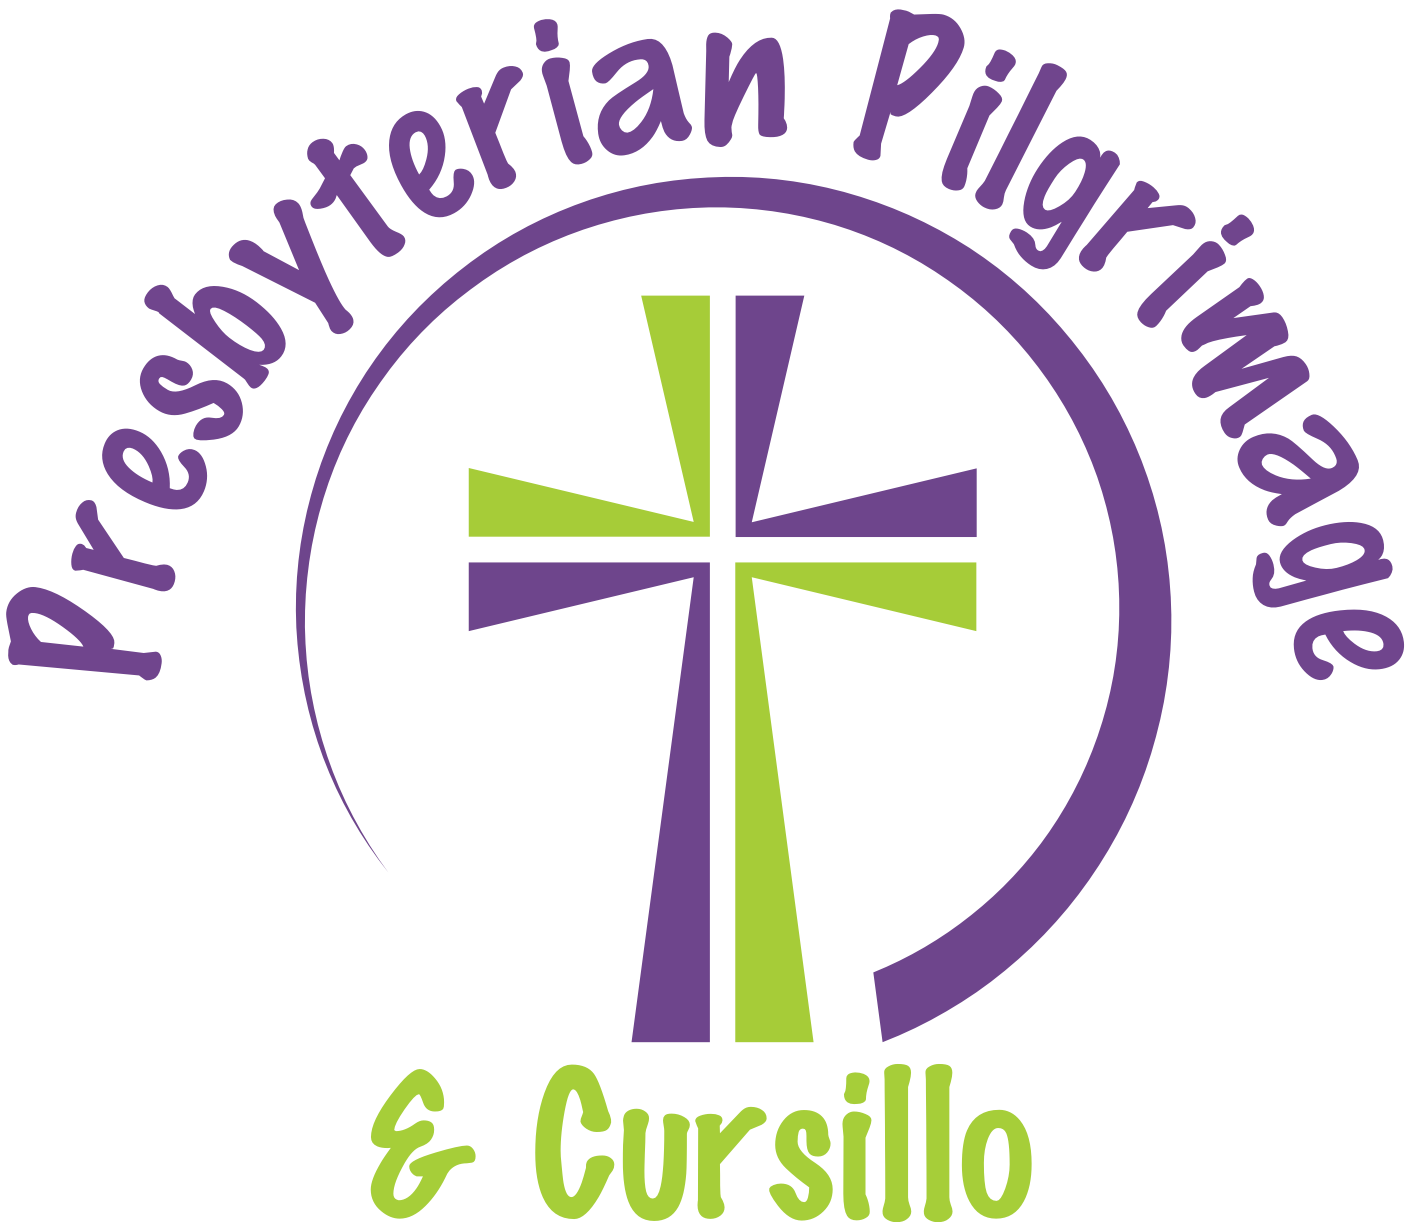 National Pilgrimage & Cursillo